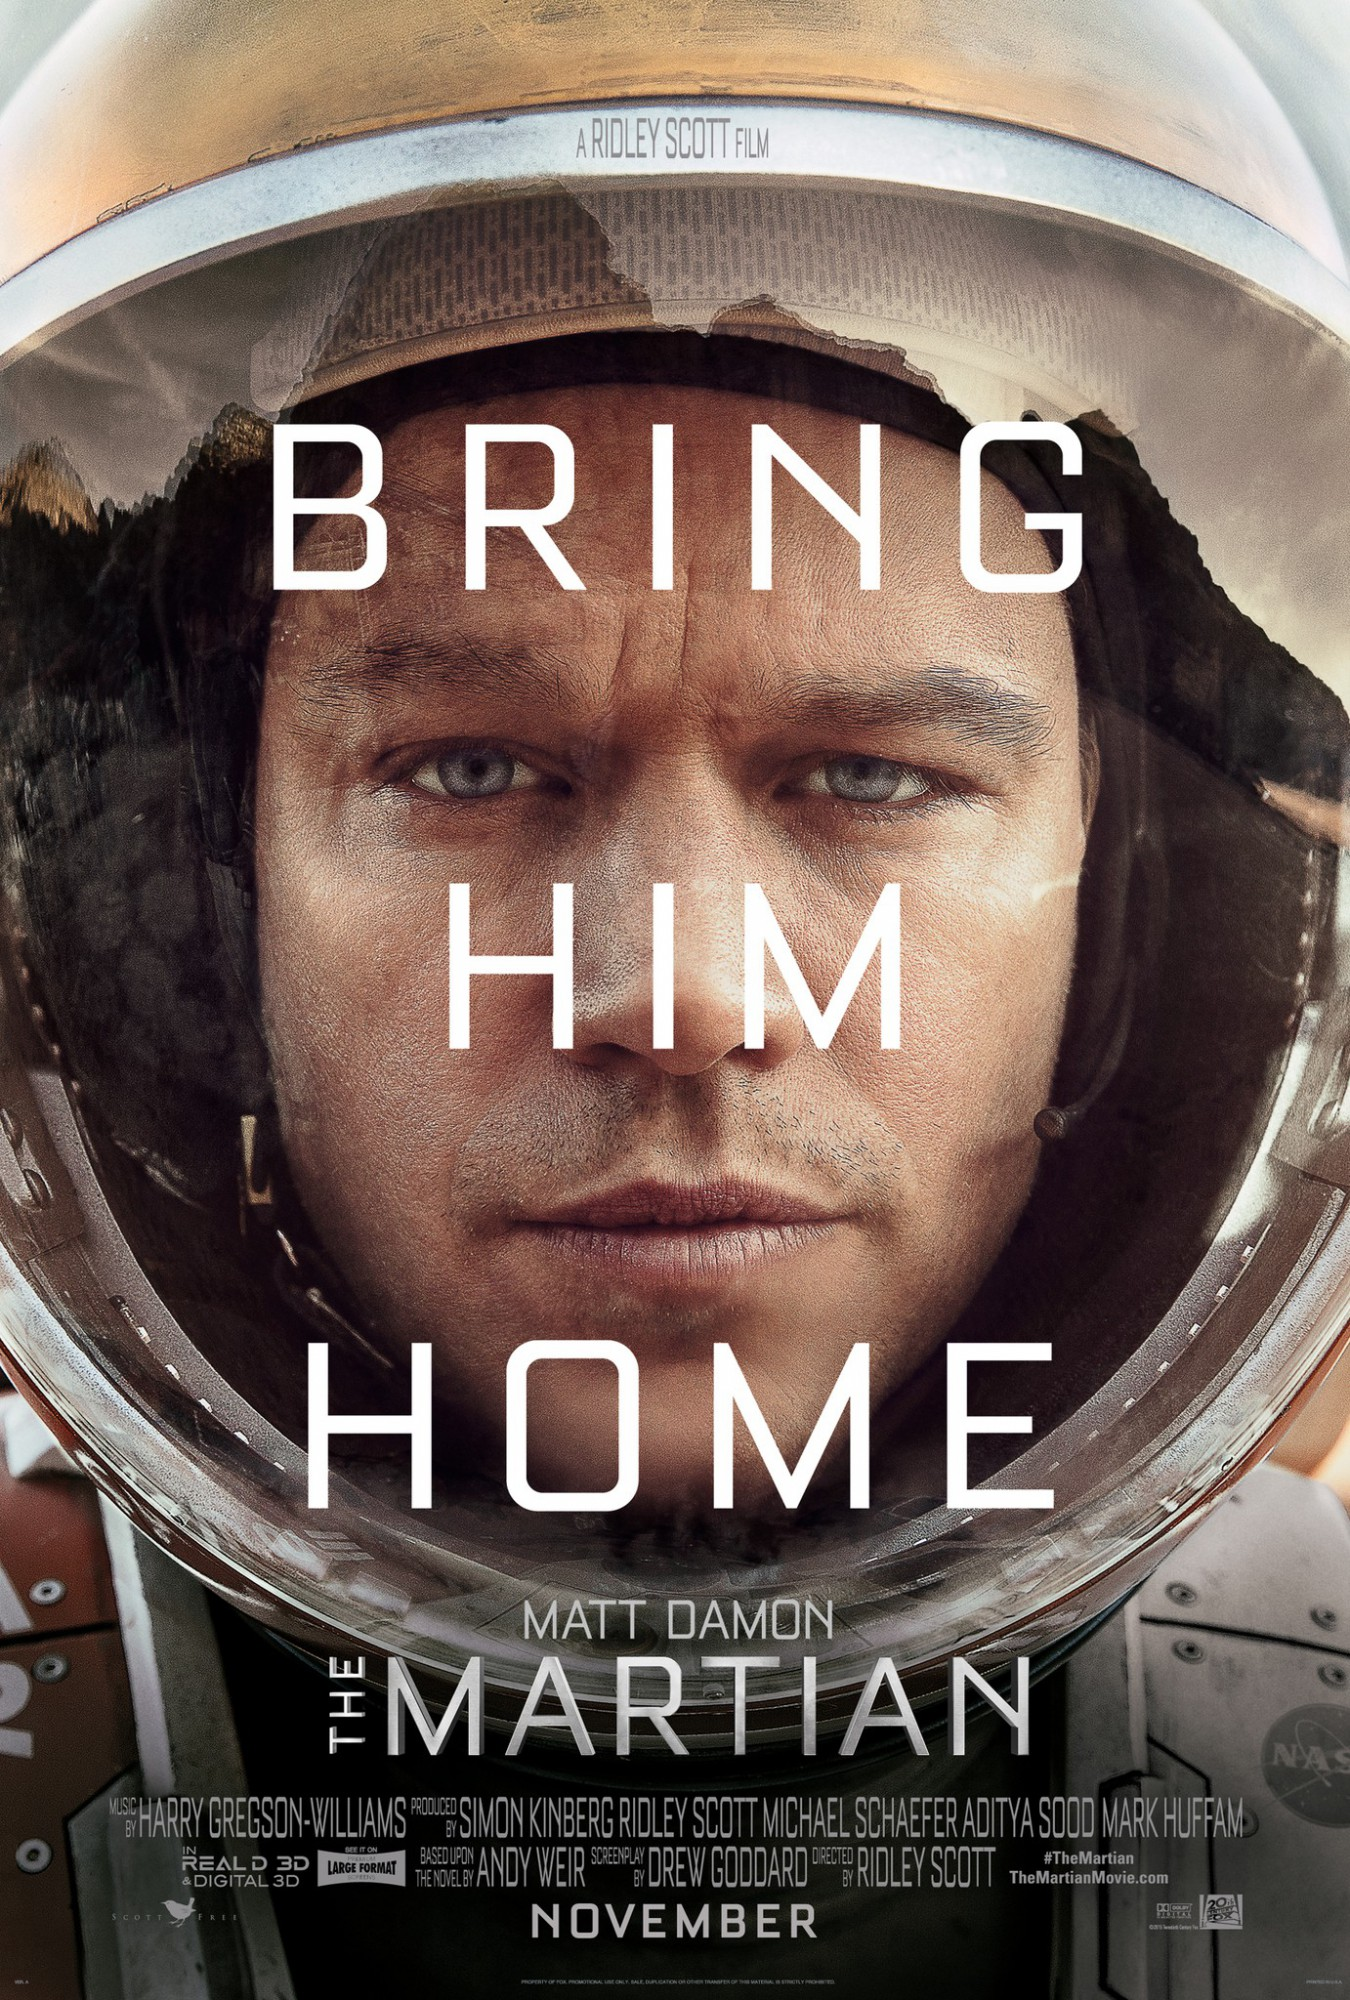 The Martian movie poster - bring hime home